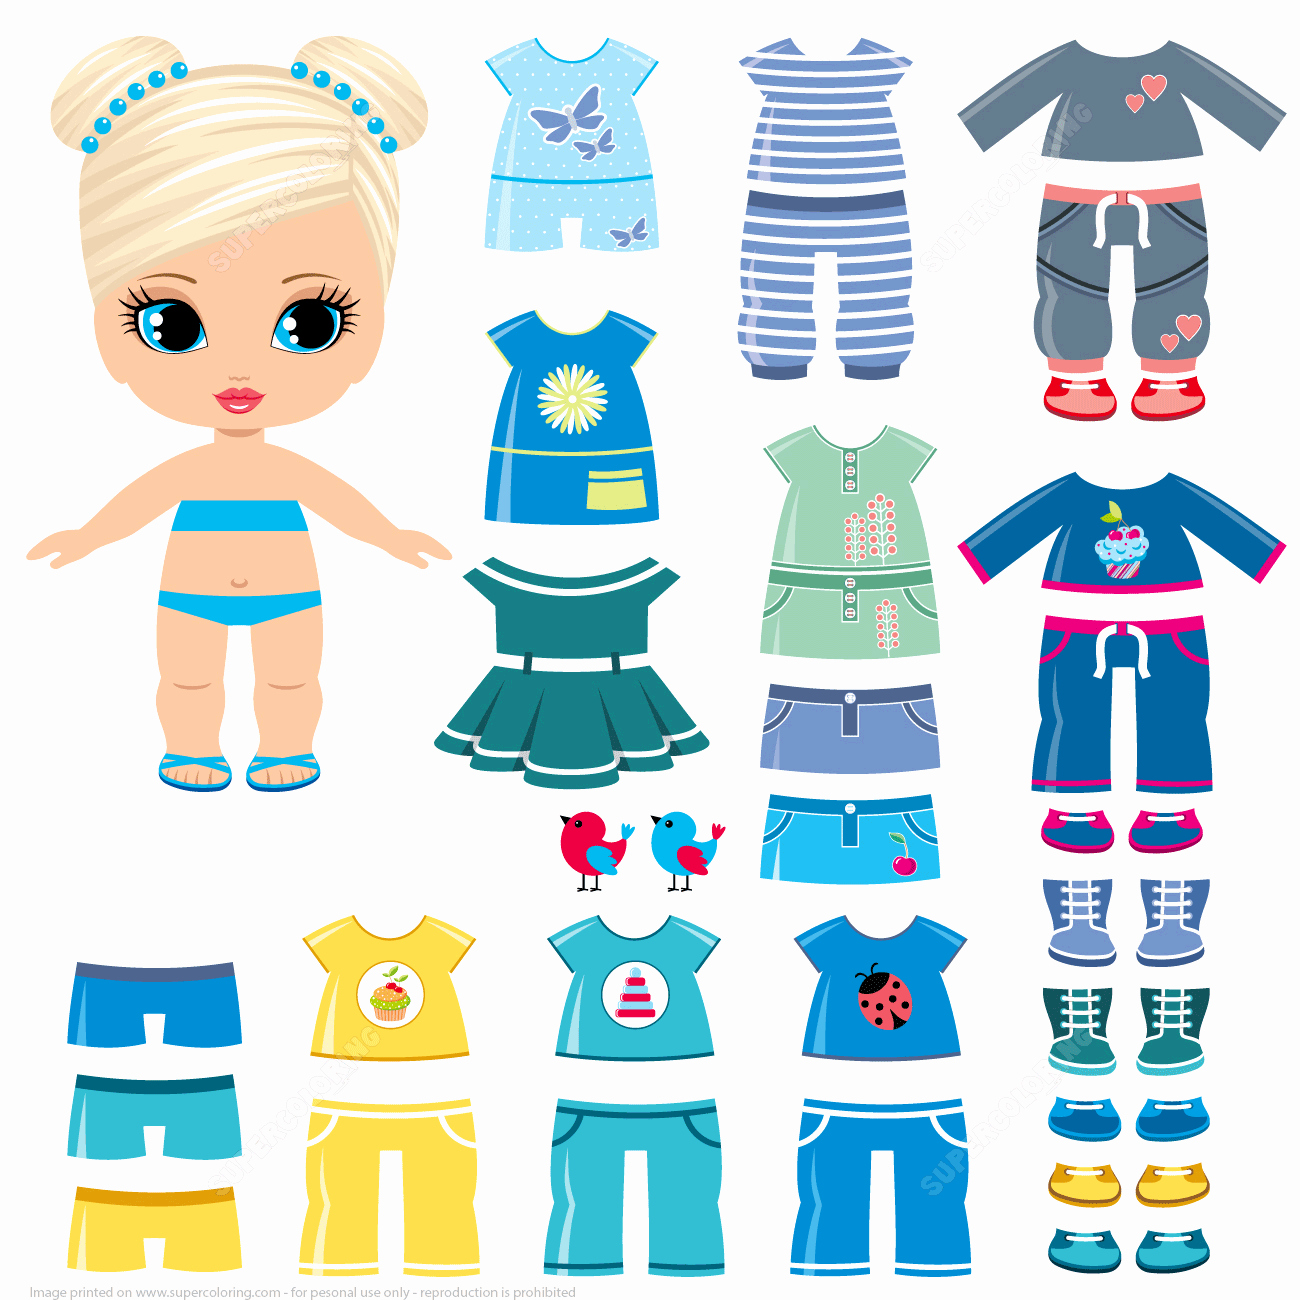 Paper Doll Clothes Template Inspirational Summer Clothing and Shoes for A Little Girl Paper Doll